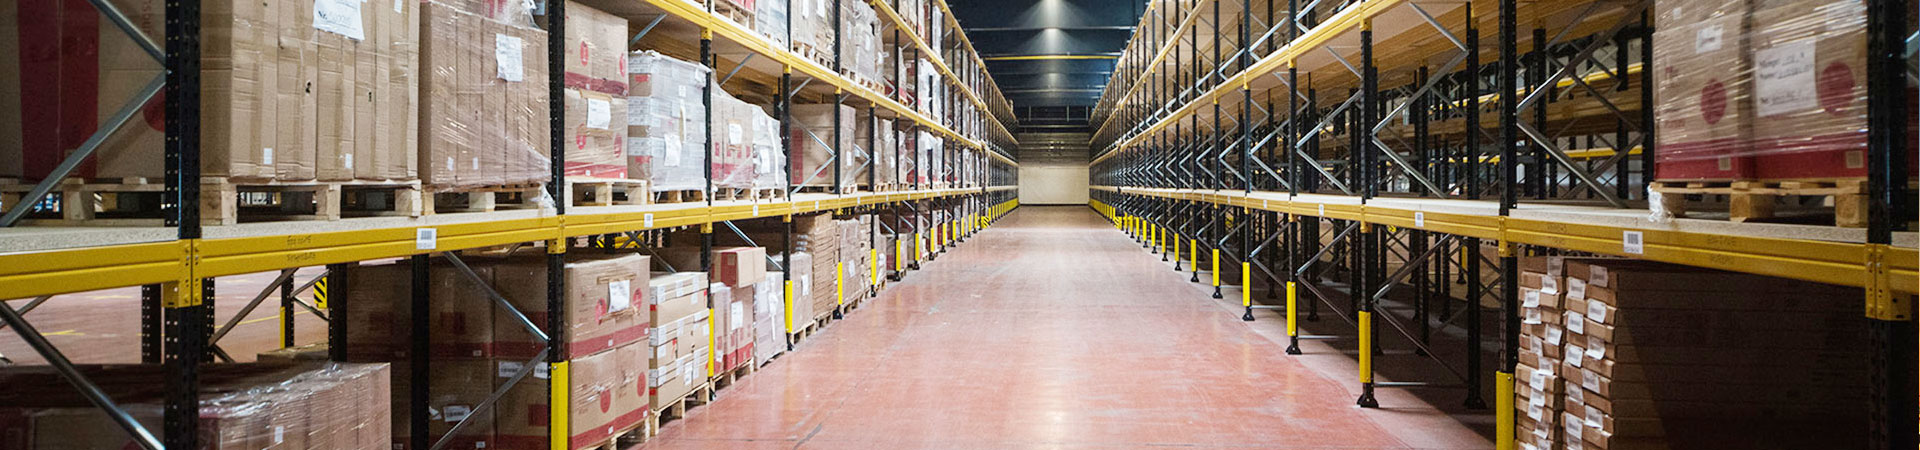 storage facility, Warehouse facility Services in Qatar.